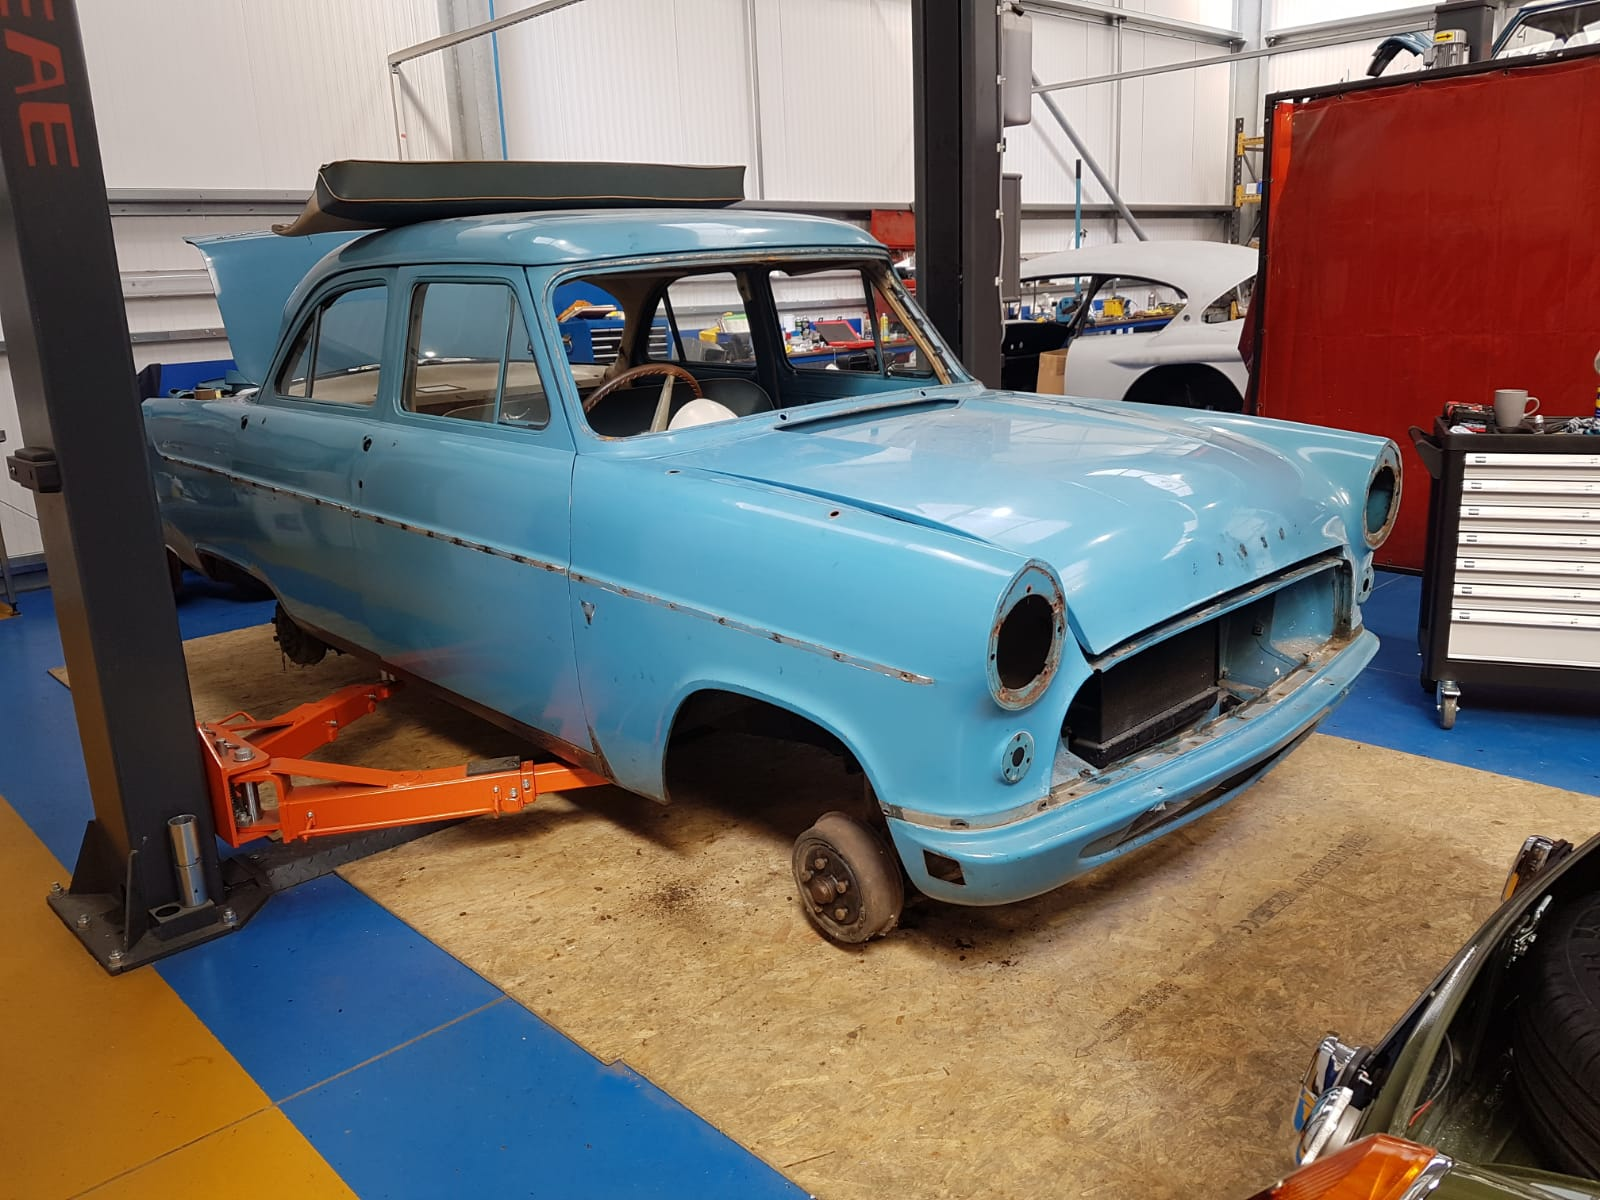 1956 Ford Consul: Strip down and body repair